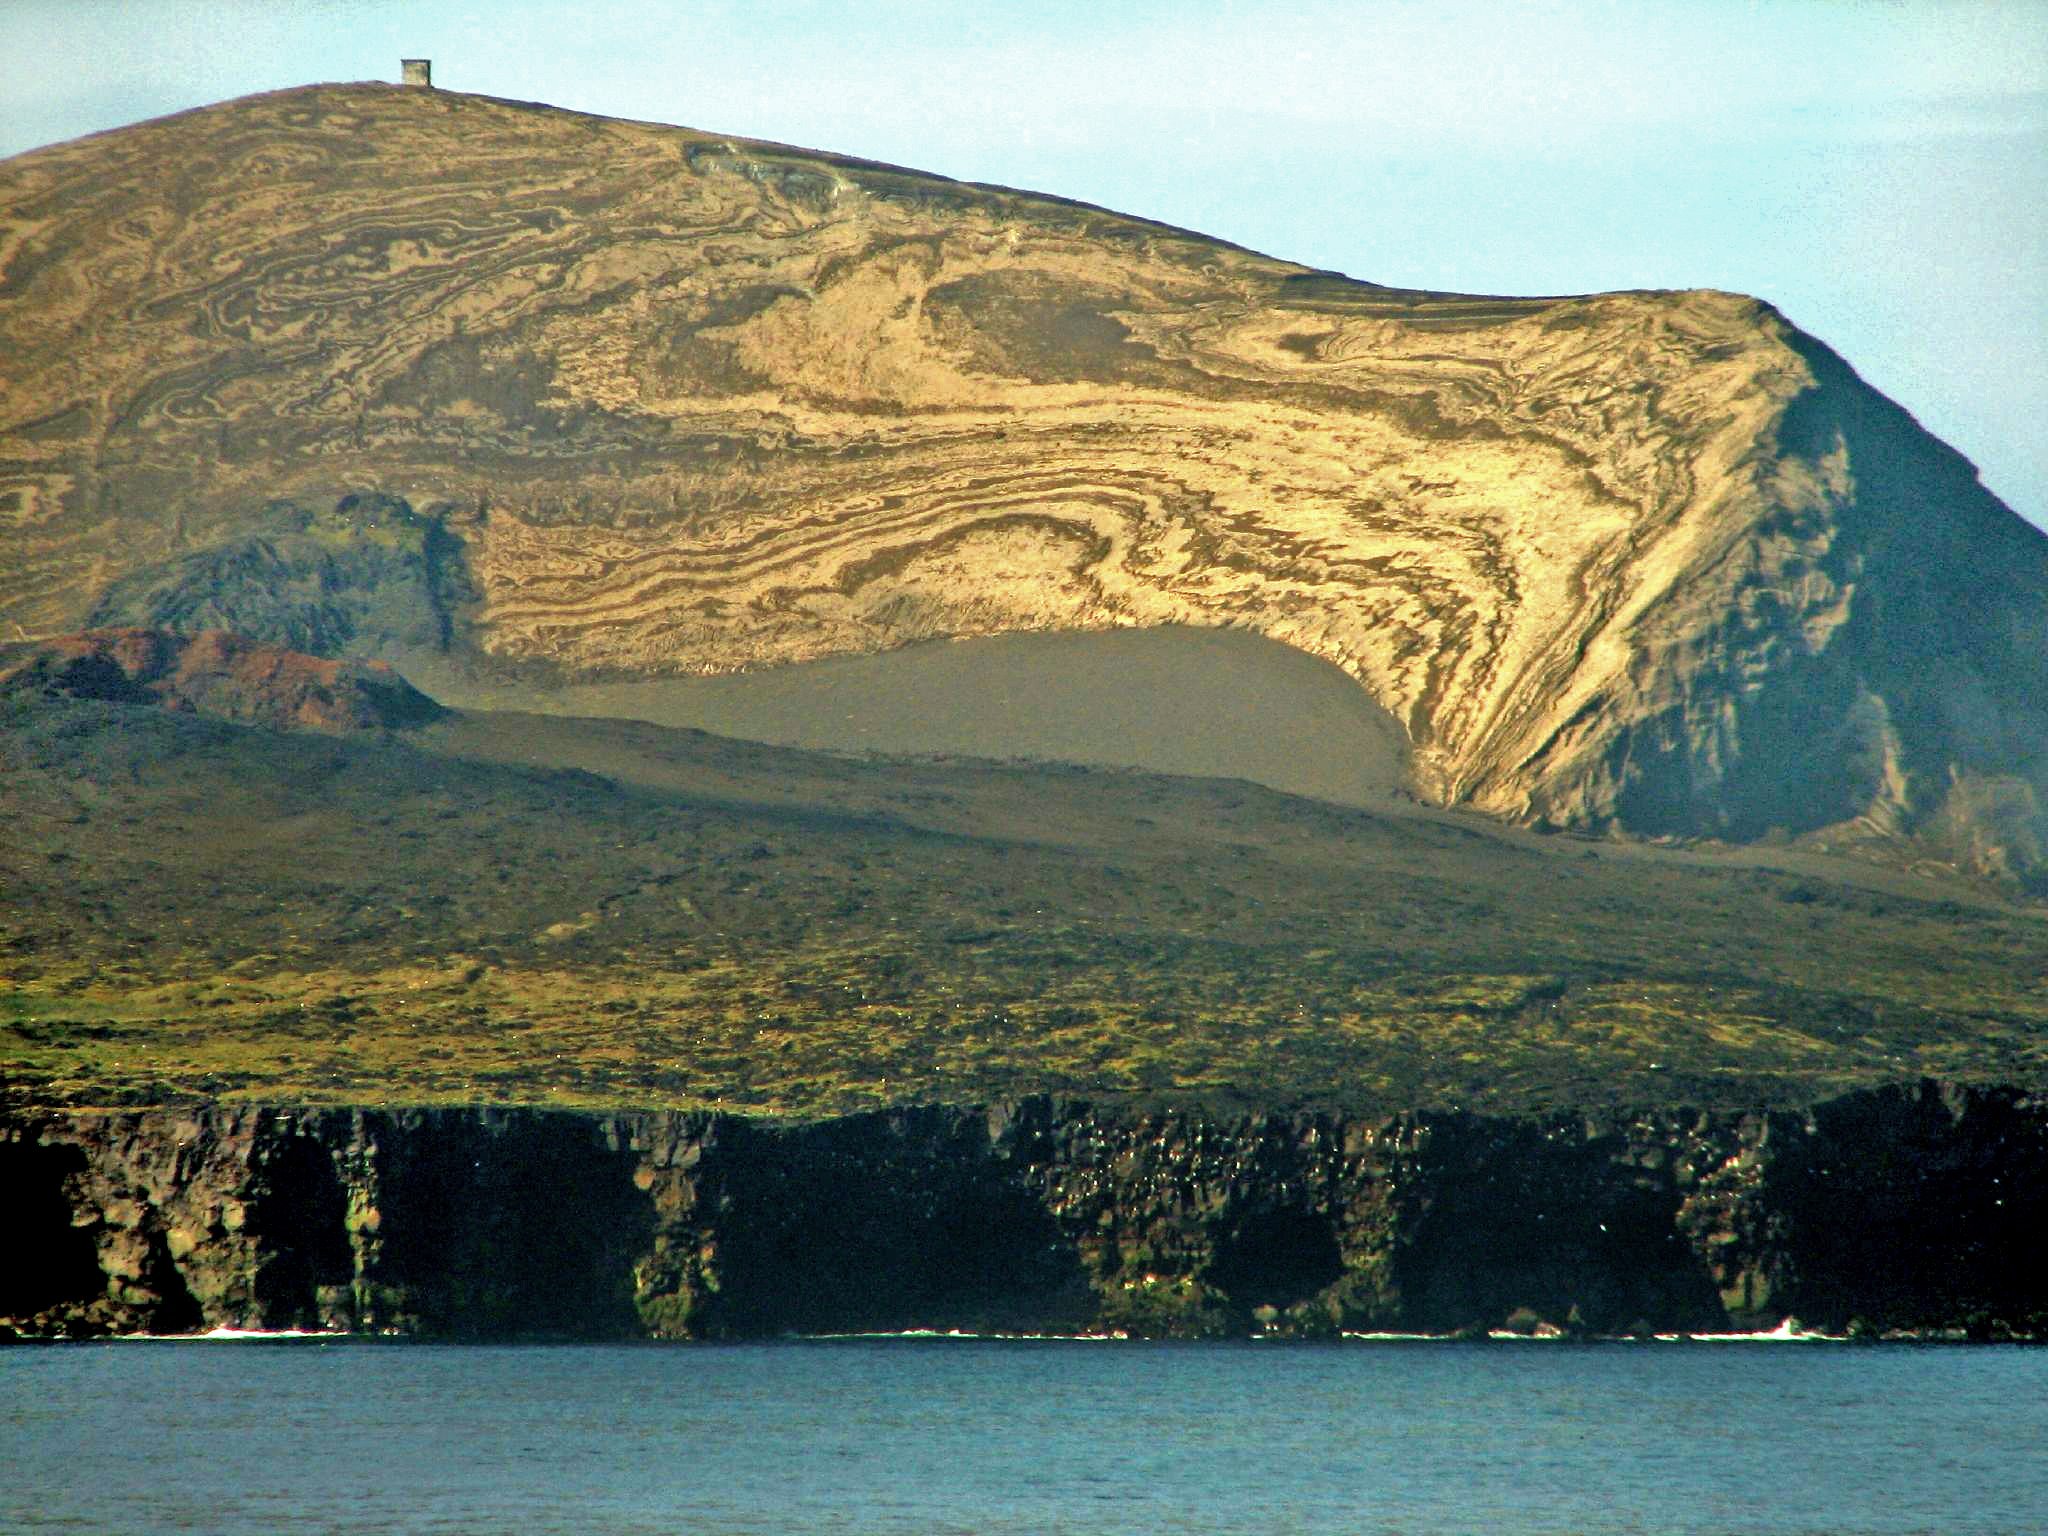 View of Iceland's not-so-old Surtsey Island from its coastal cliffs